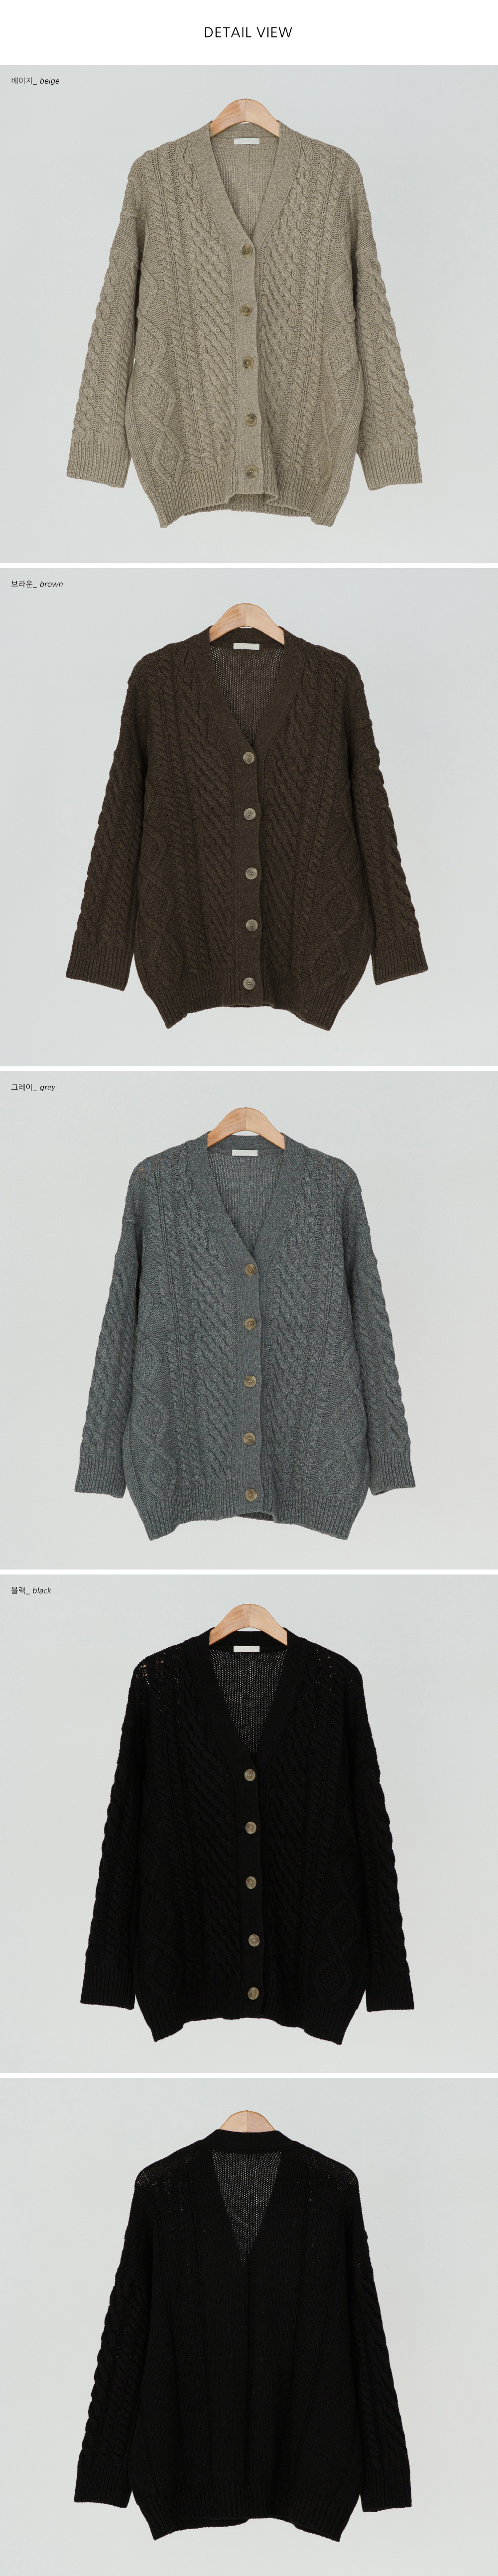 Twist V-neck lamb wool cardigan